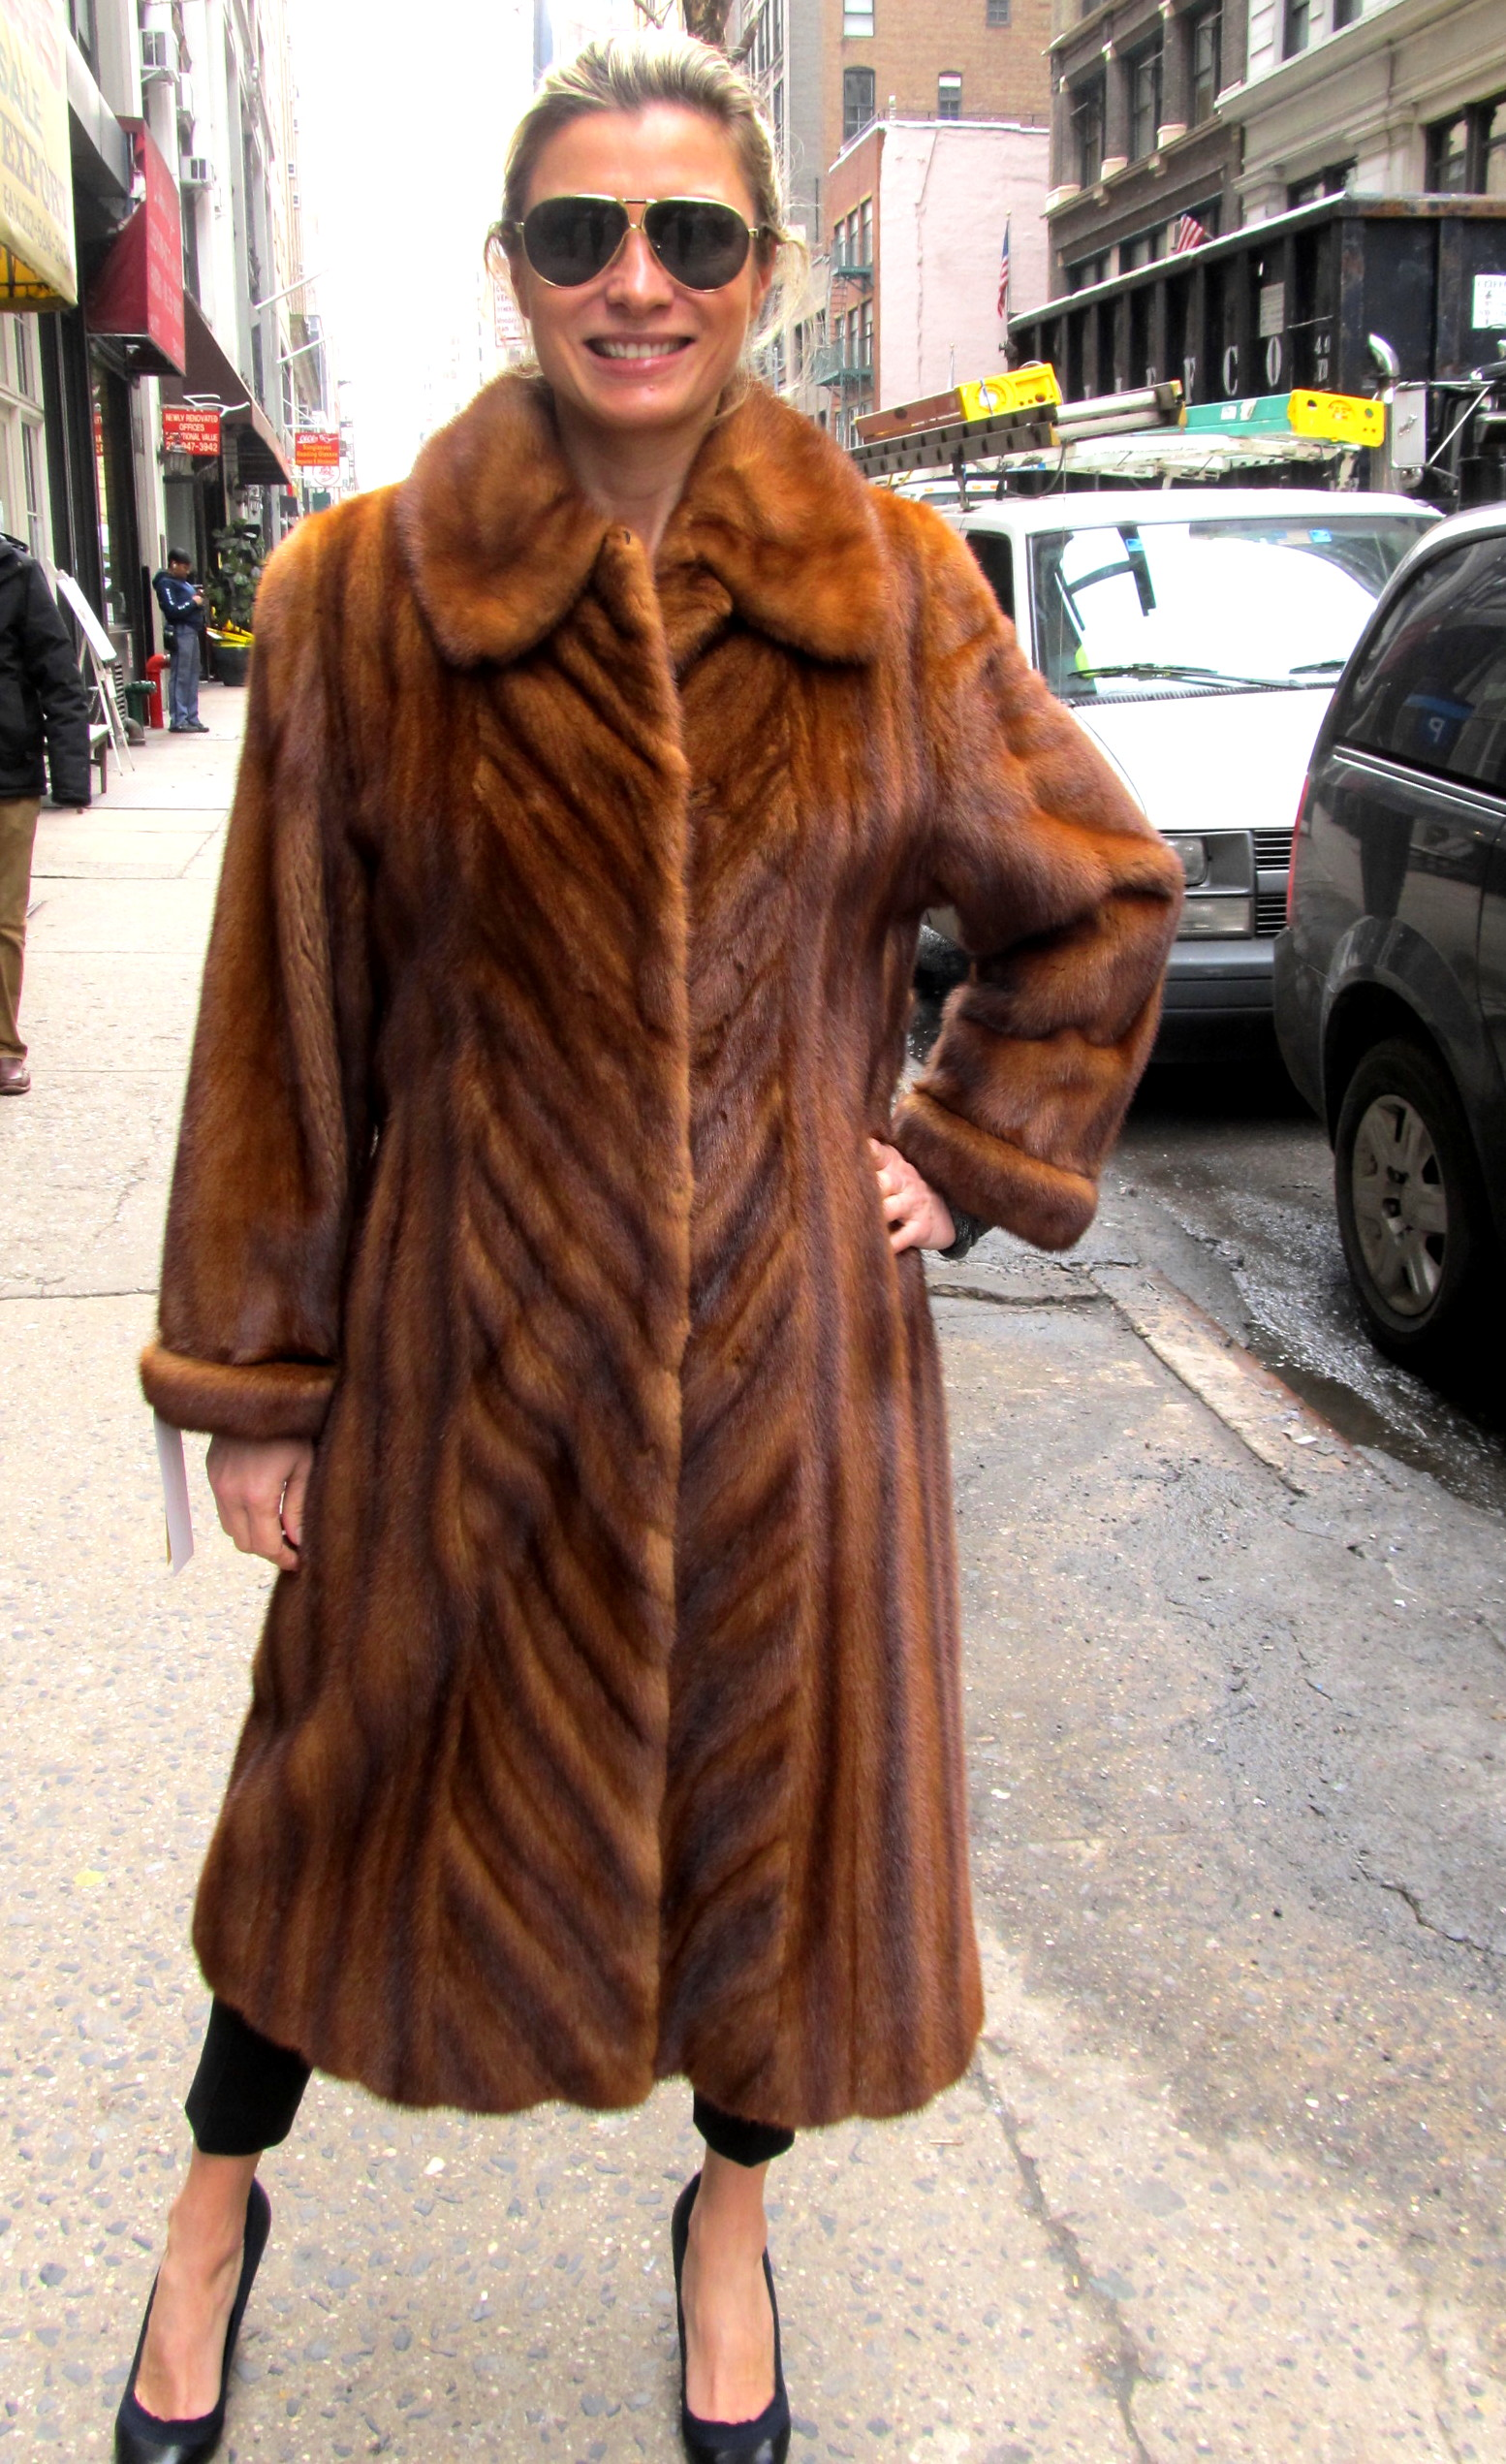 Full Length Coats Archives - Madison Avenue Furs & Henry Cowit, Inc.